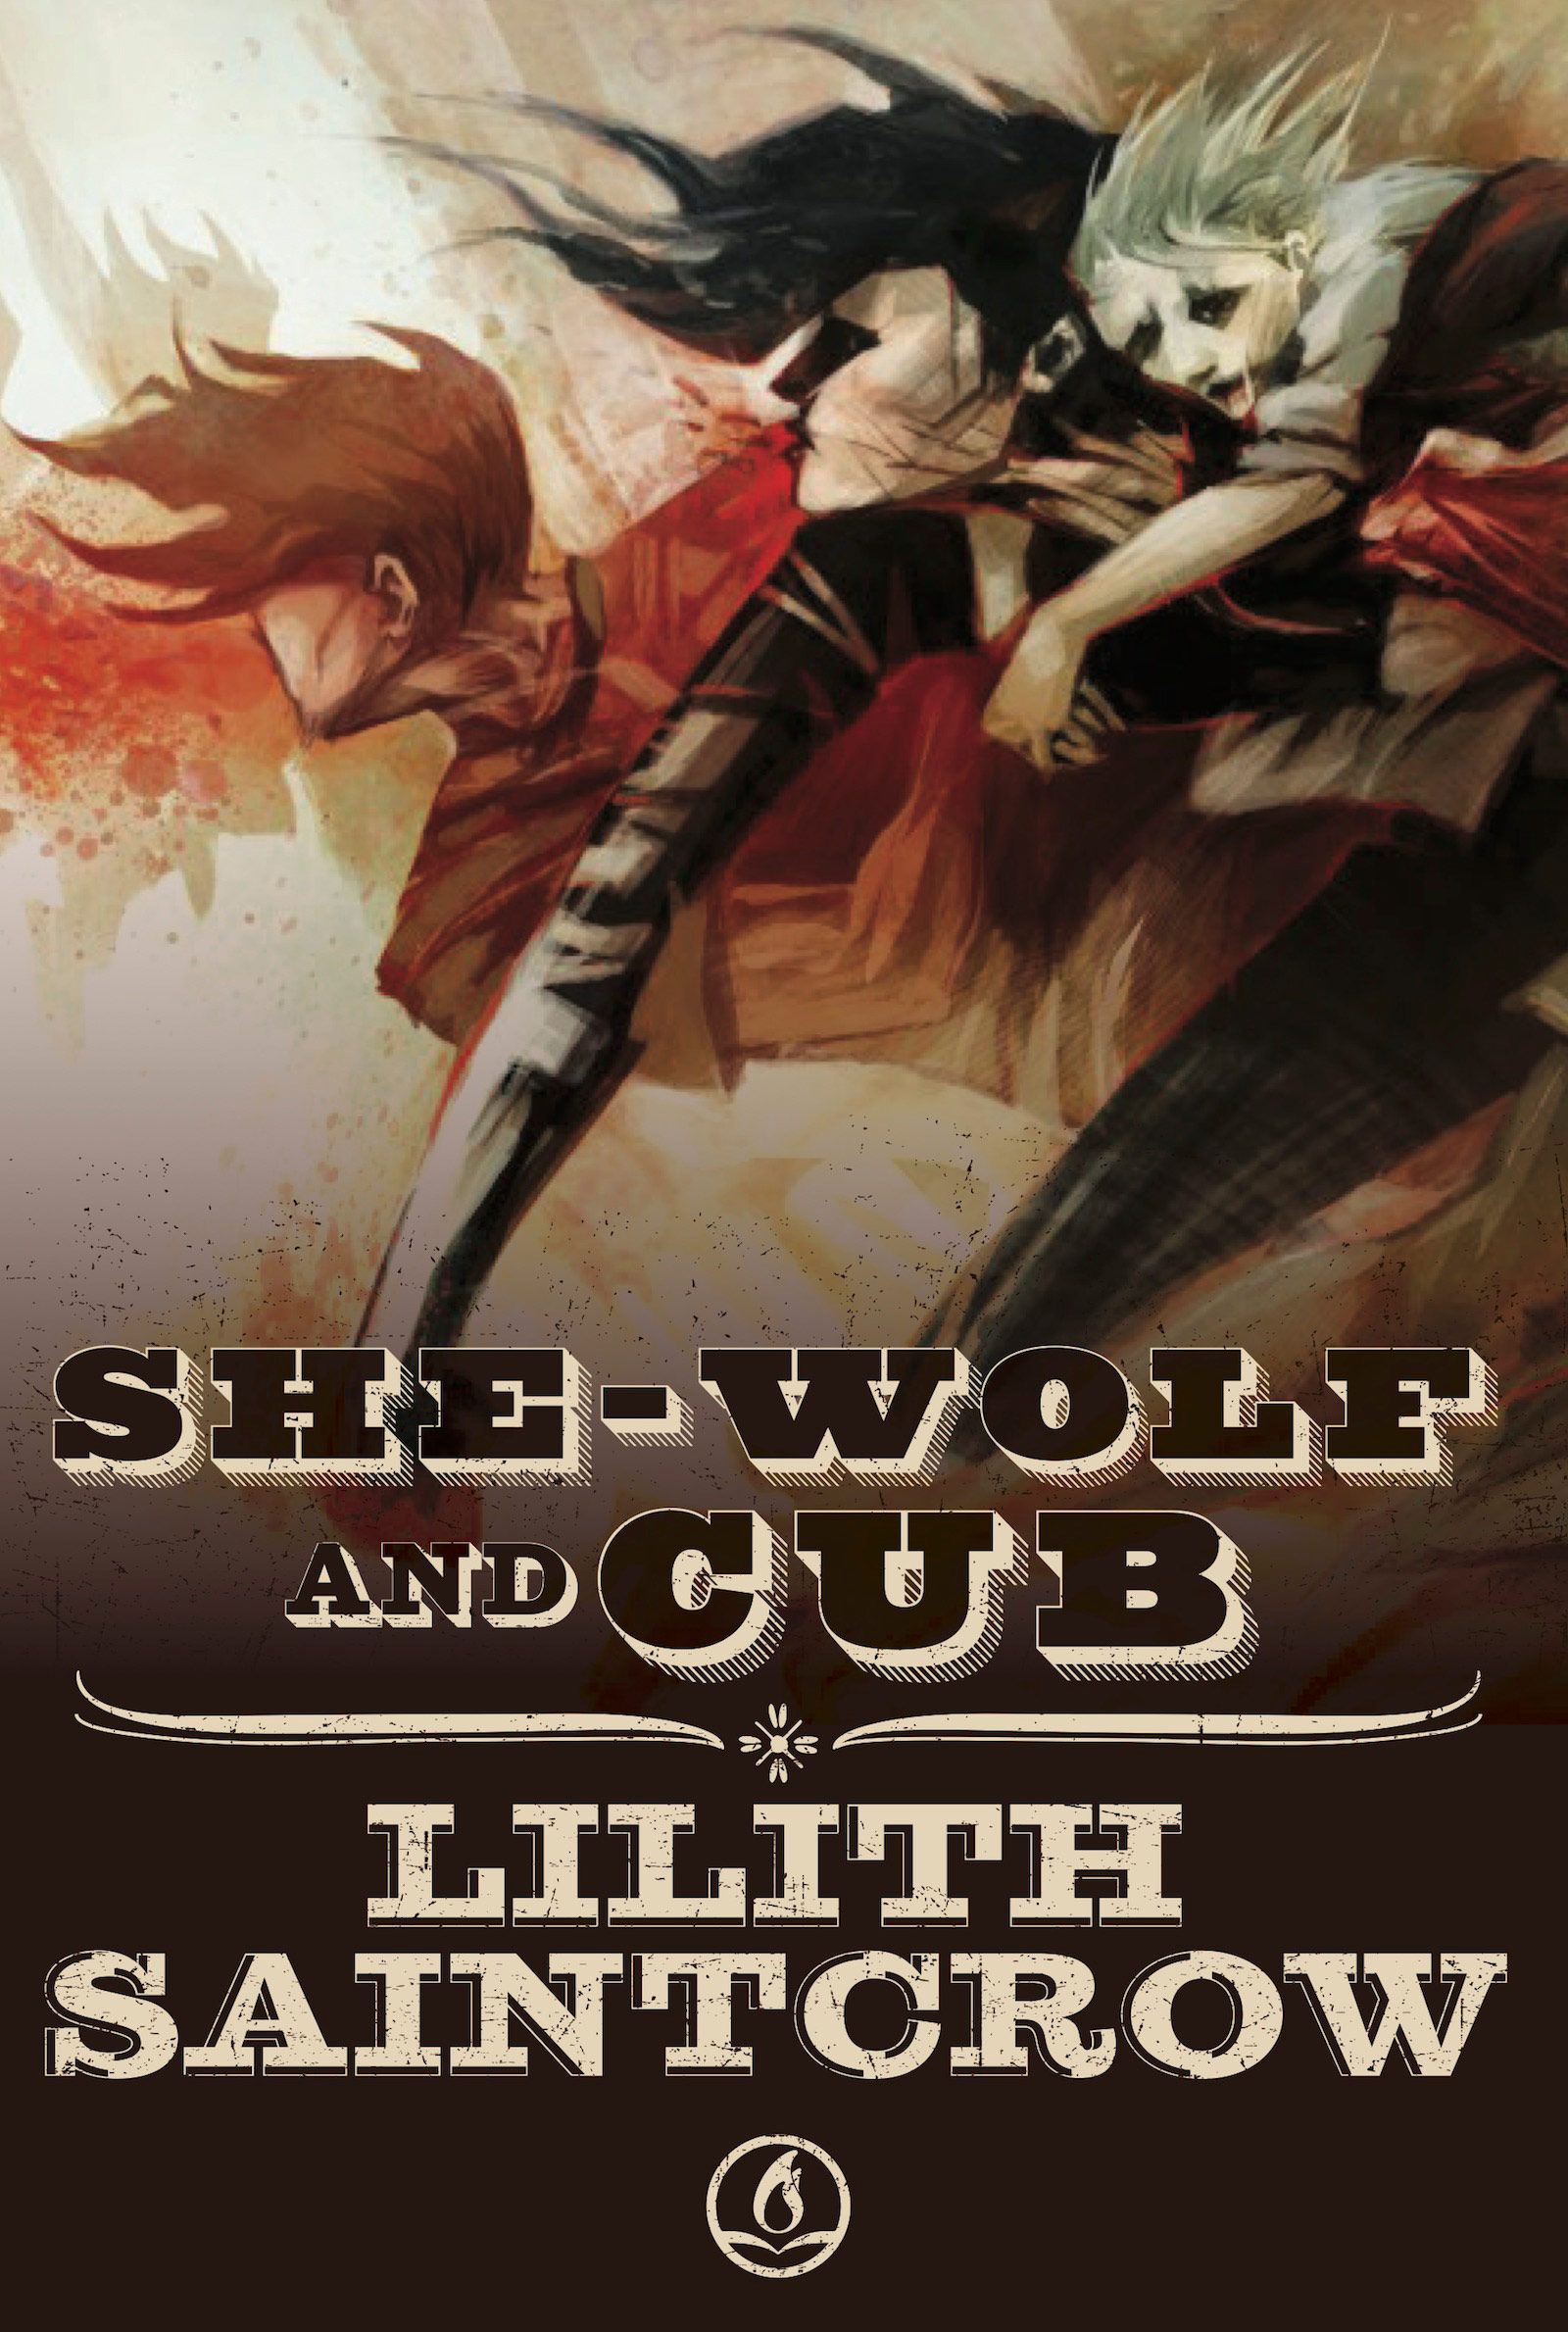 Lilith Saintcrow: When A Short Story Won't Stay Short For Long